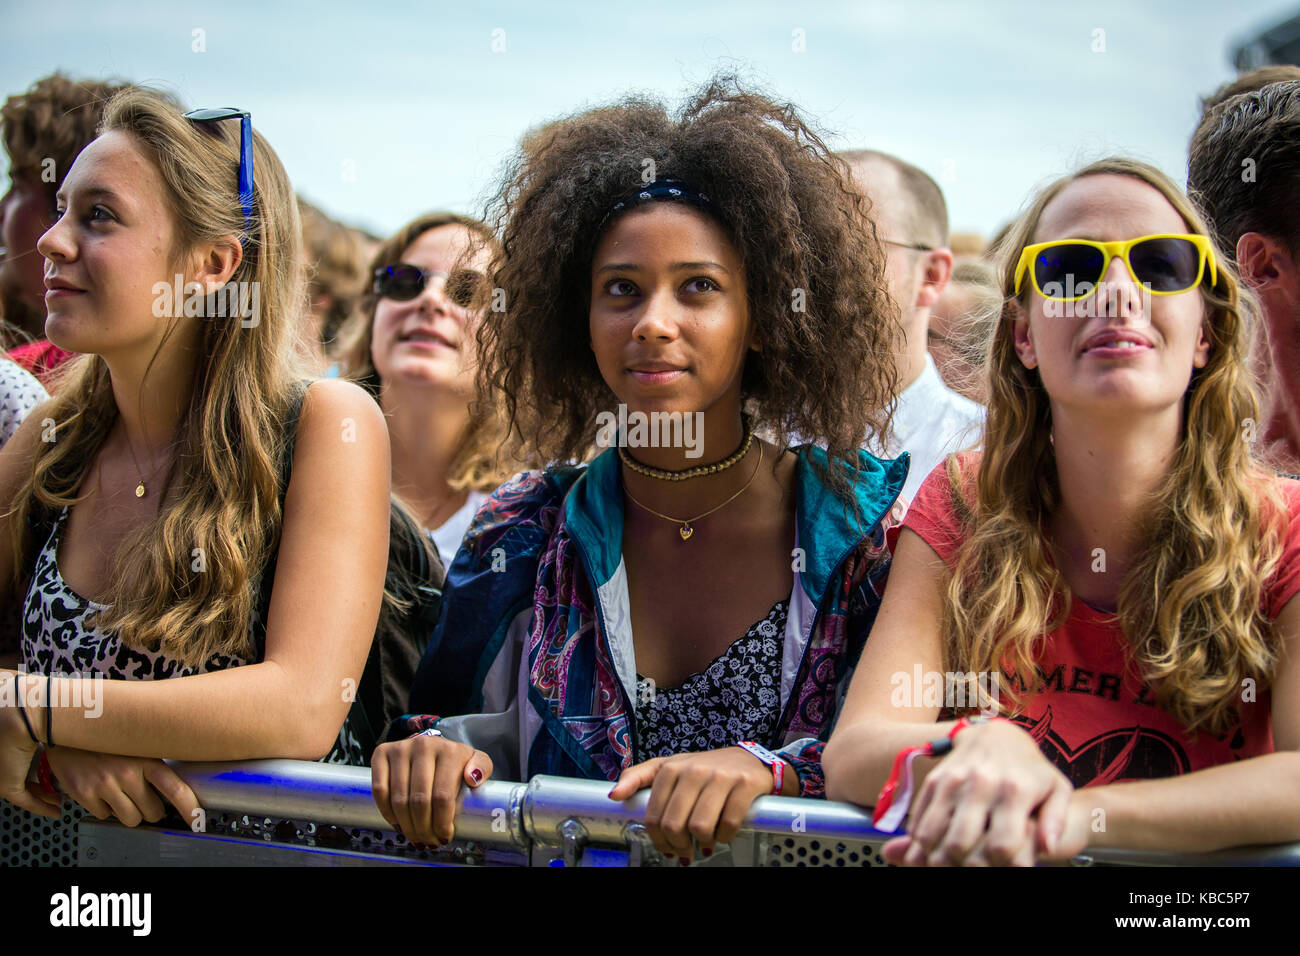 Enthusiastic and energetic music fans attend a concert with the American rap duo Run the Jewels who performs at - Stock Image